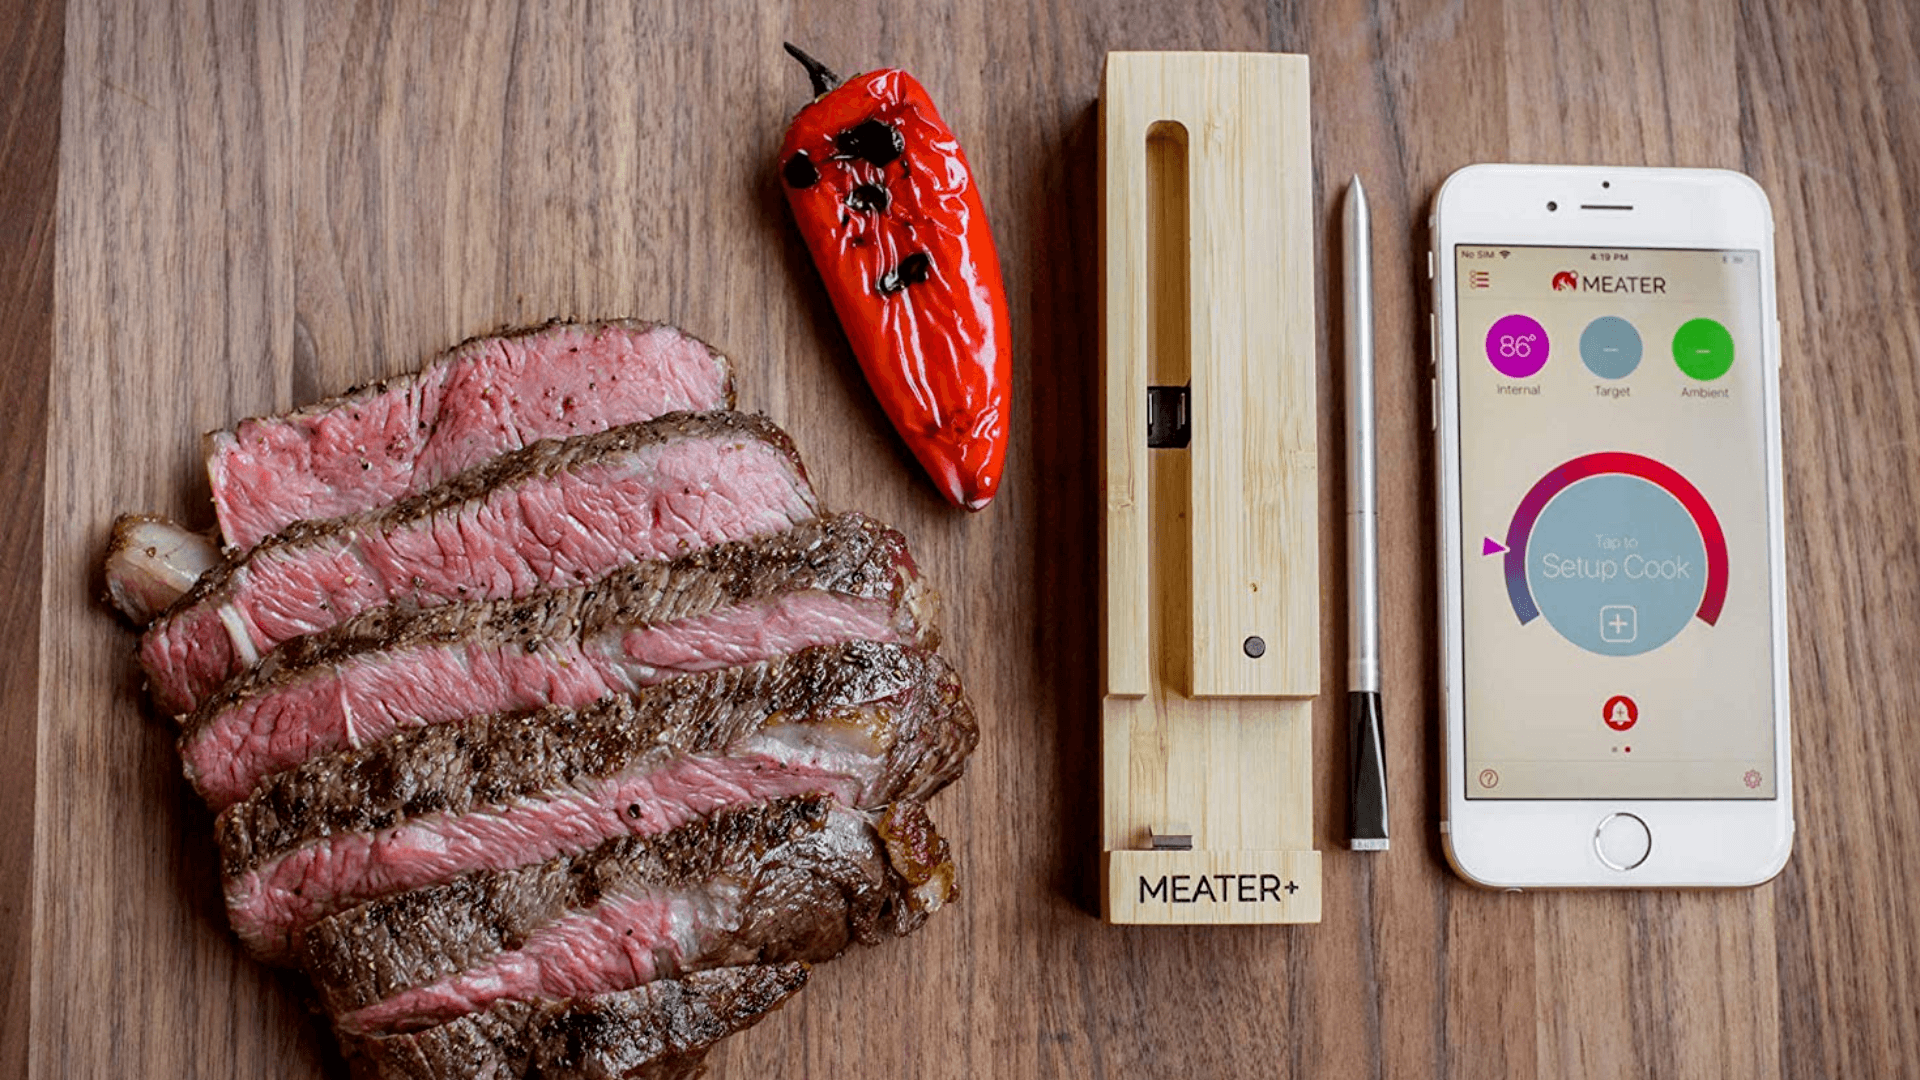 Piece of meat and grilled pepper beside meater meat thermometer and phone app